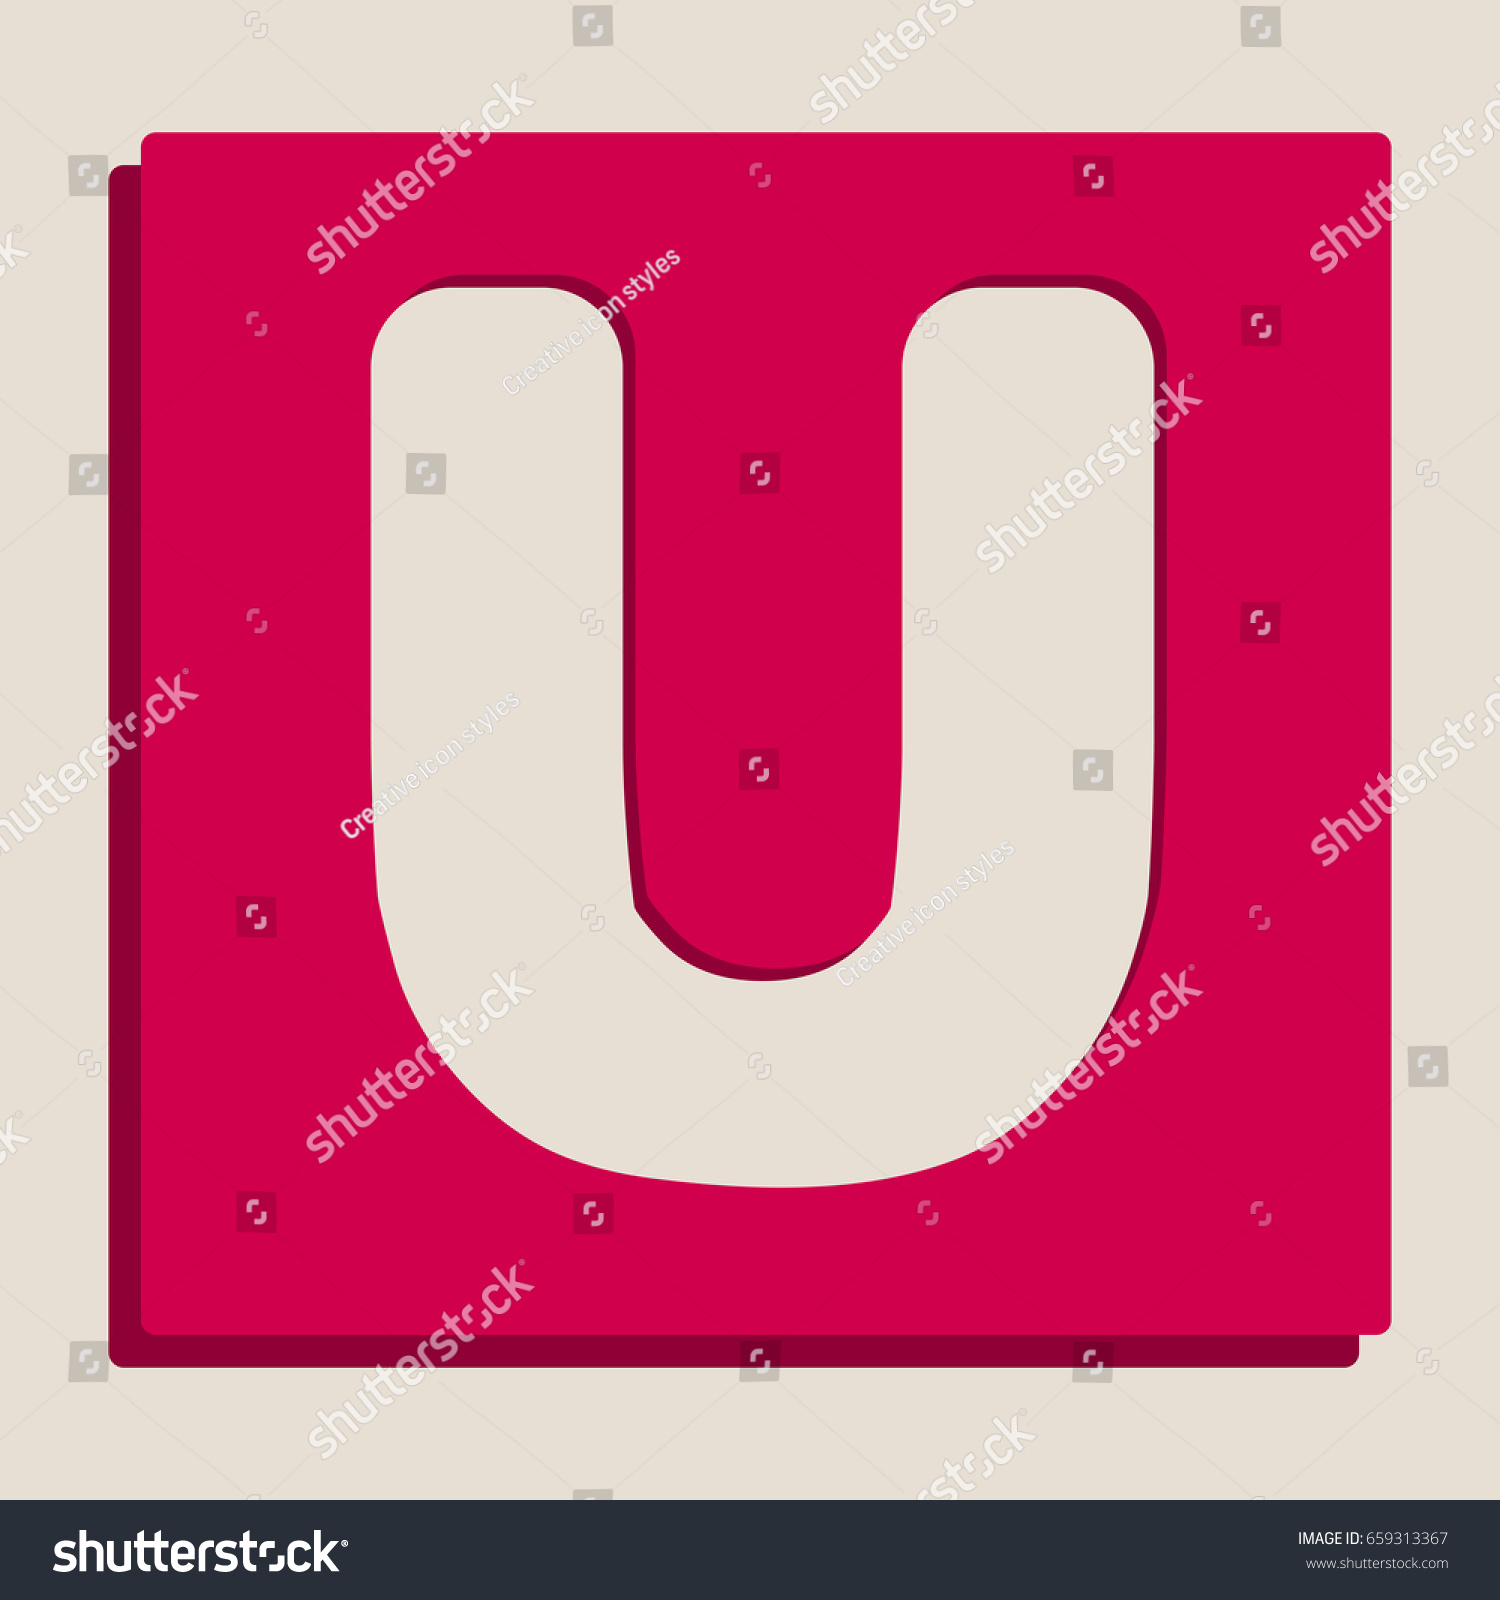 Letter U sign design template element. Vector. Grayscale version of ...